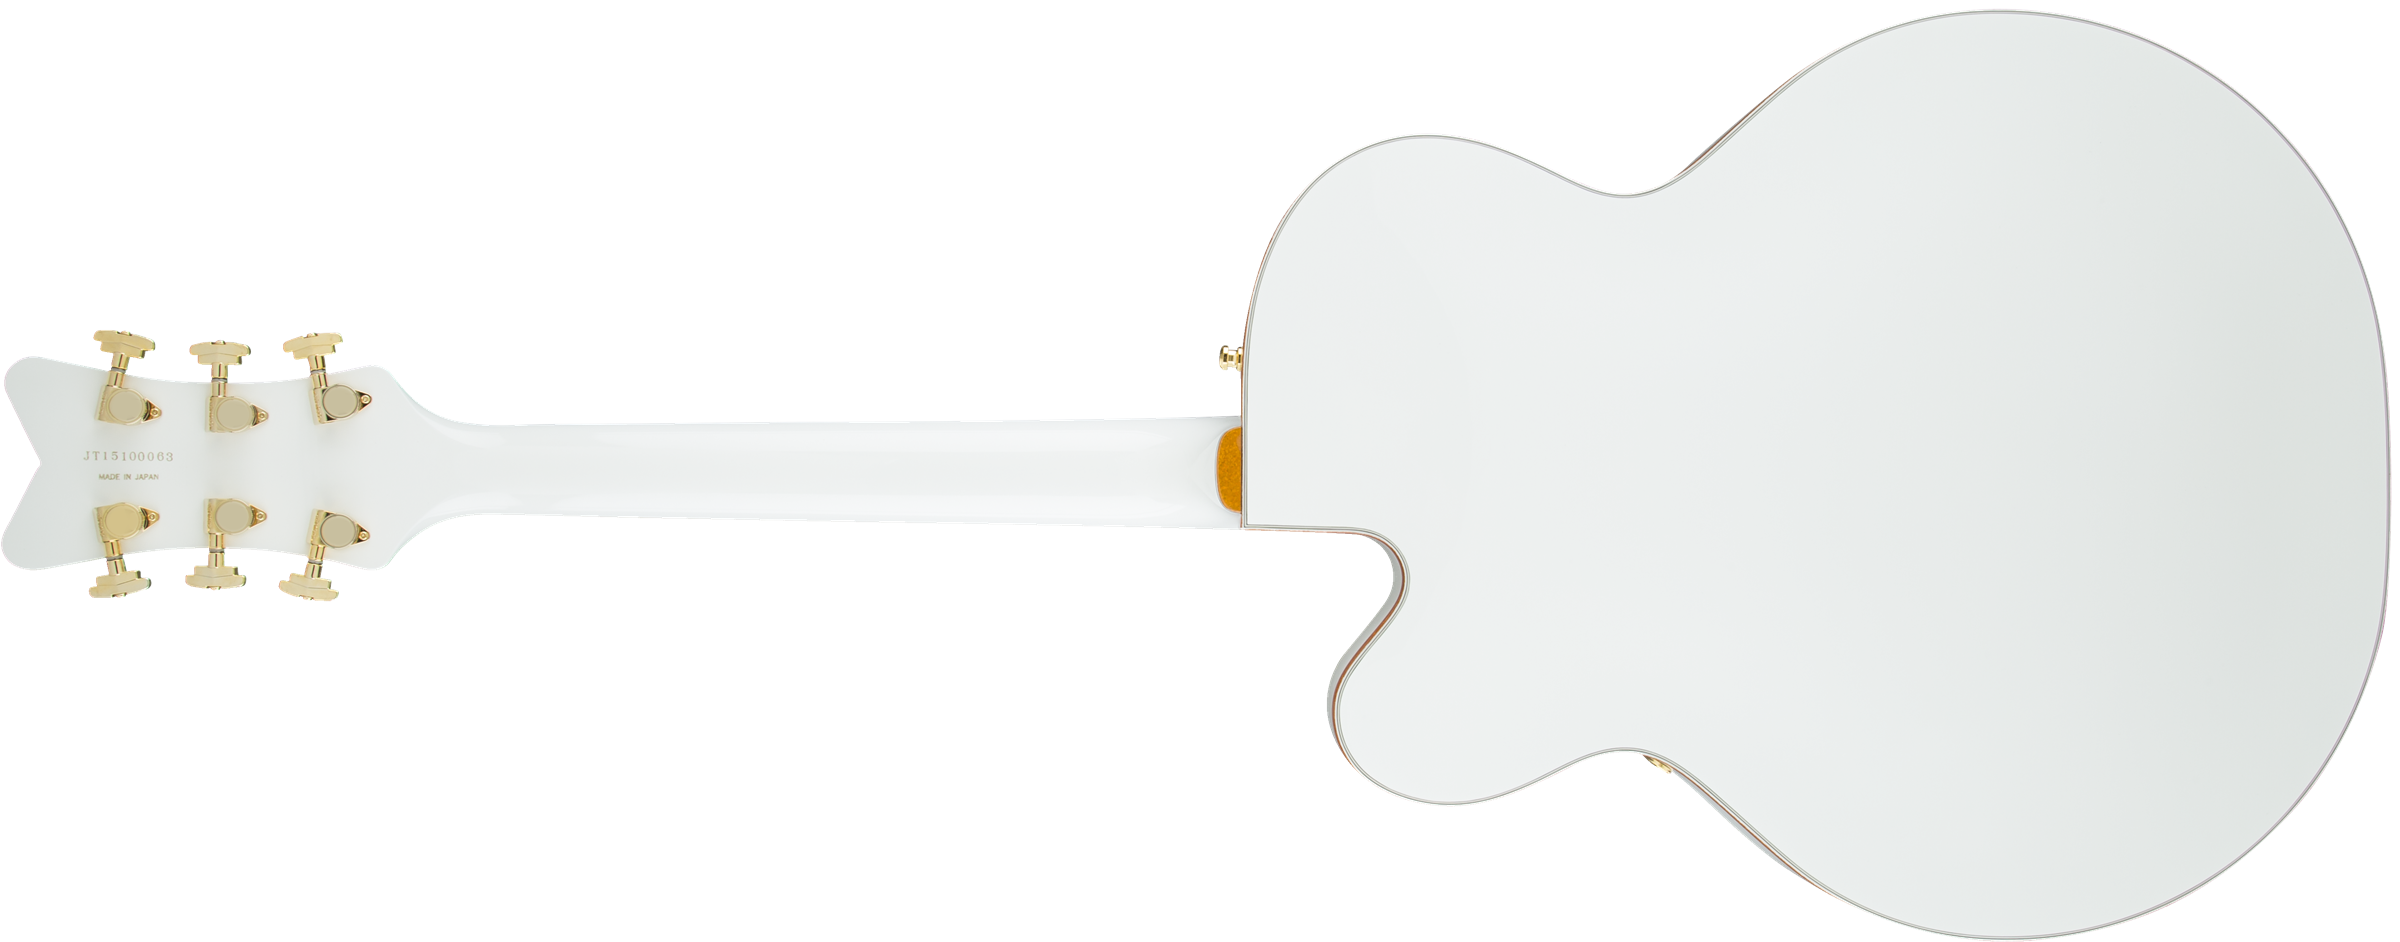 Hollow Body G6136t Wht Players Edition Falcon With String Thru Wiring Diagram For Dean Ml 2 Tones 1 Volume Bigsby Filtertron Pickups White